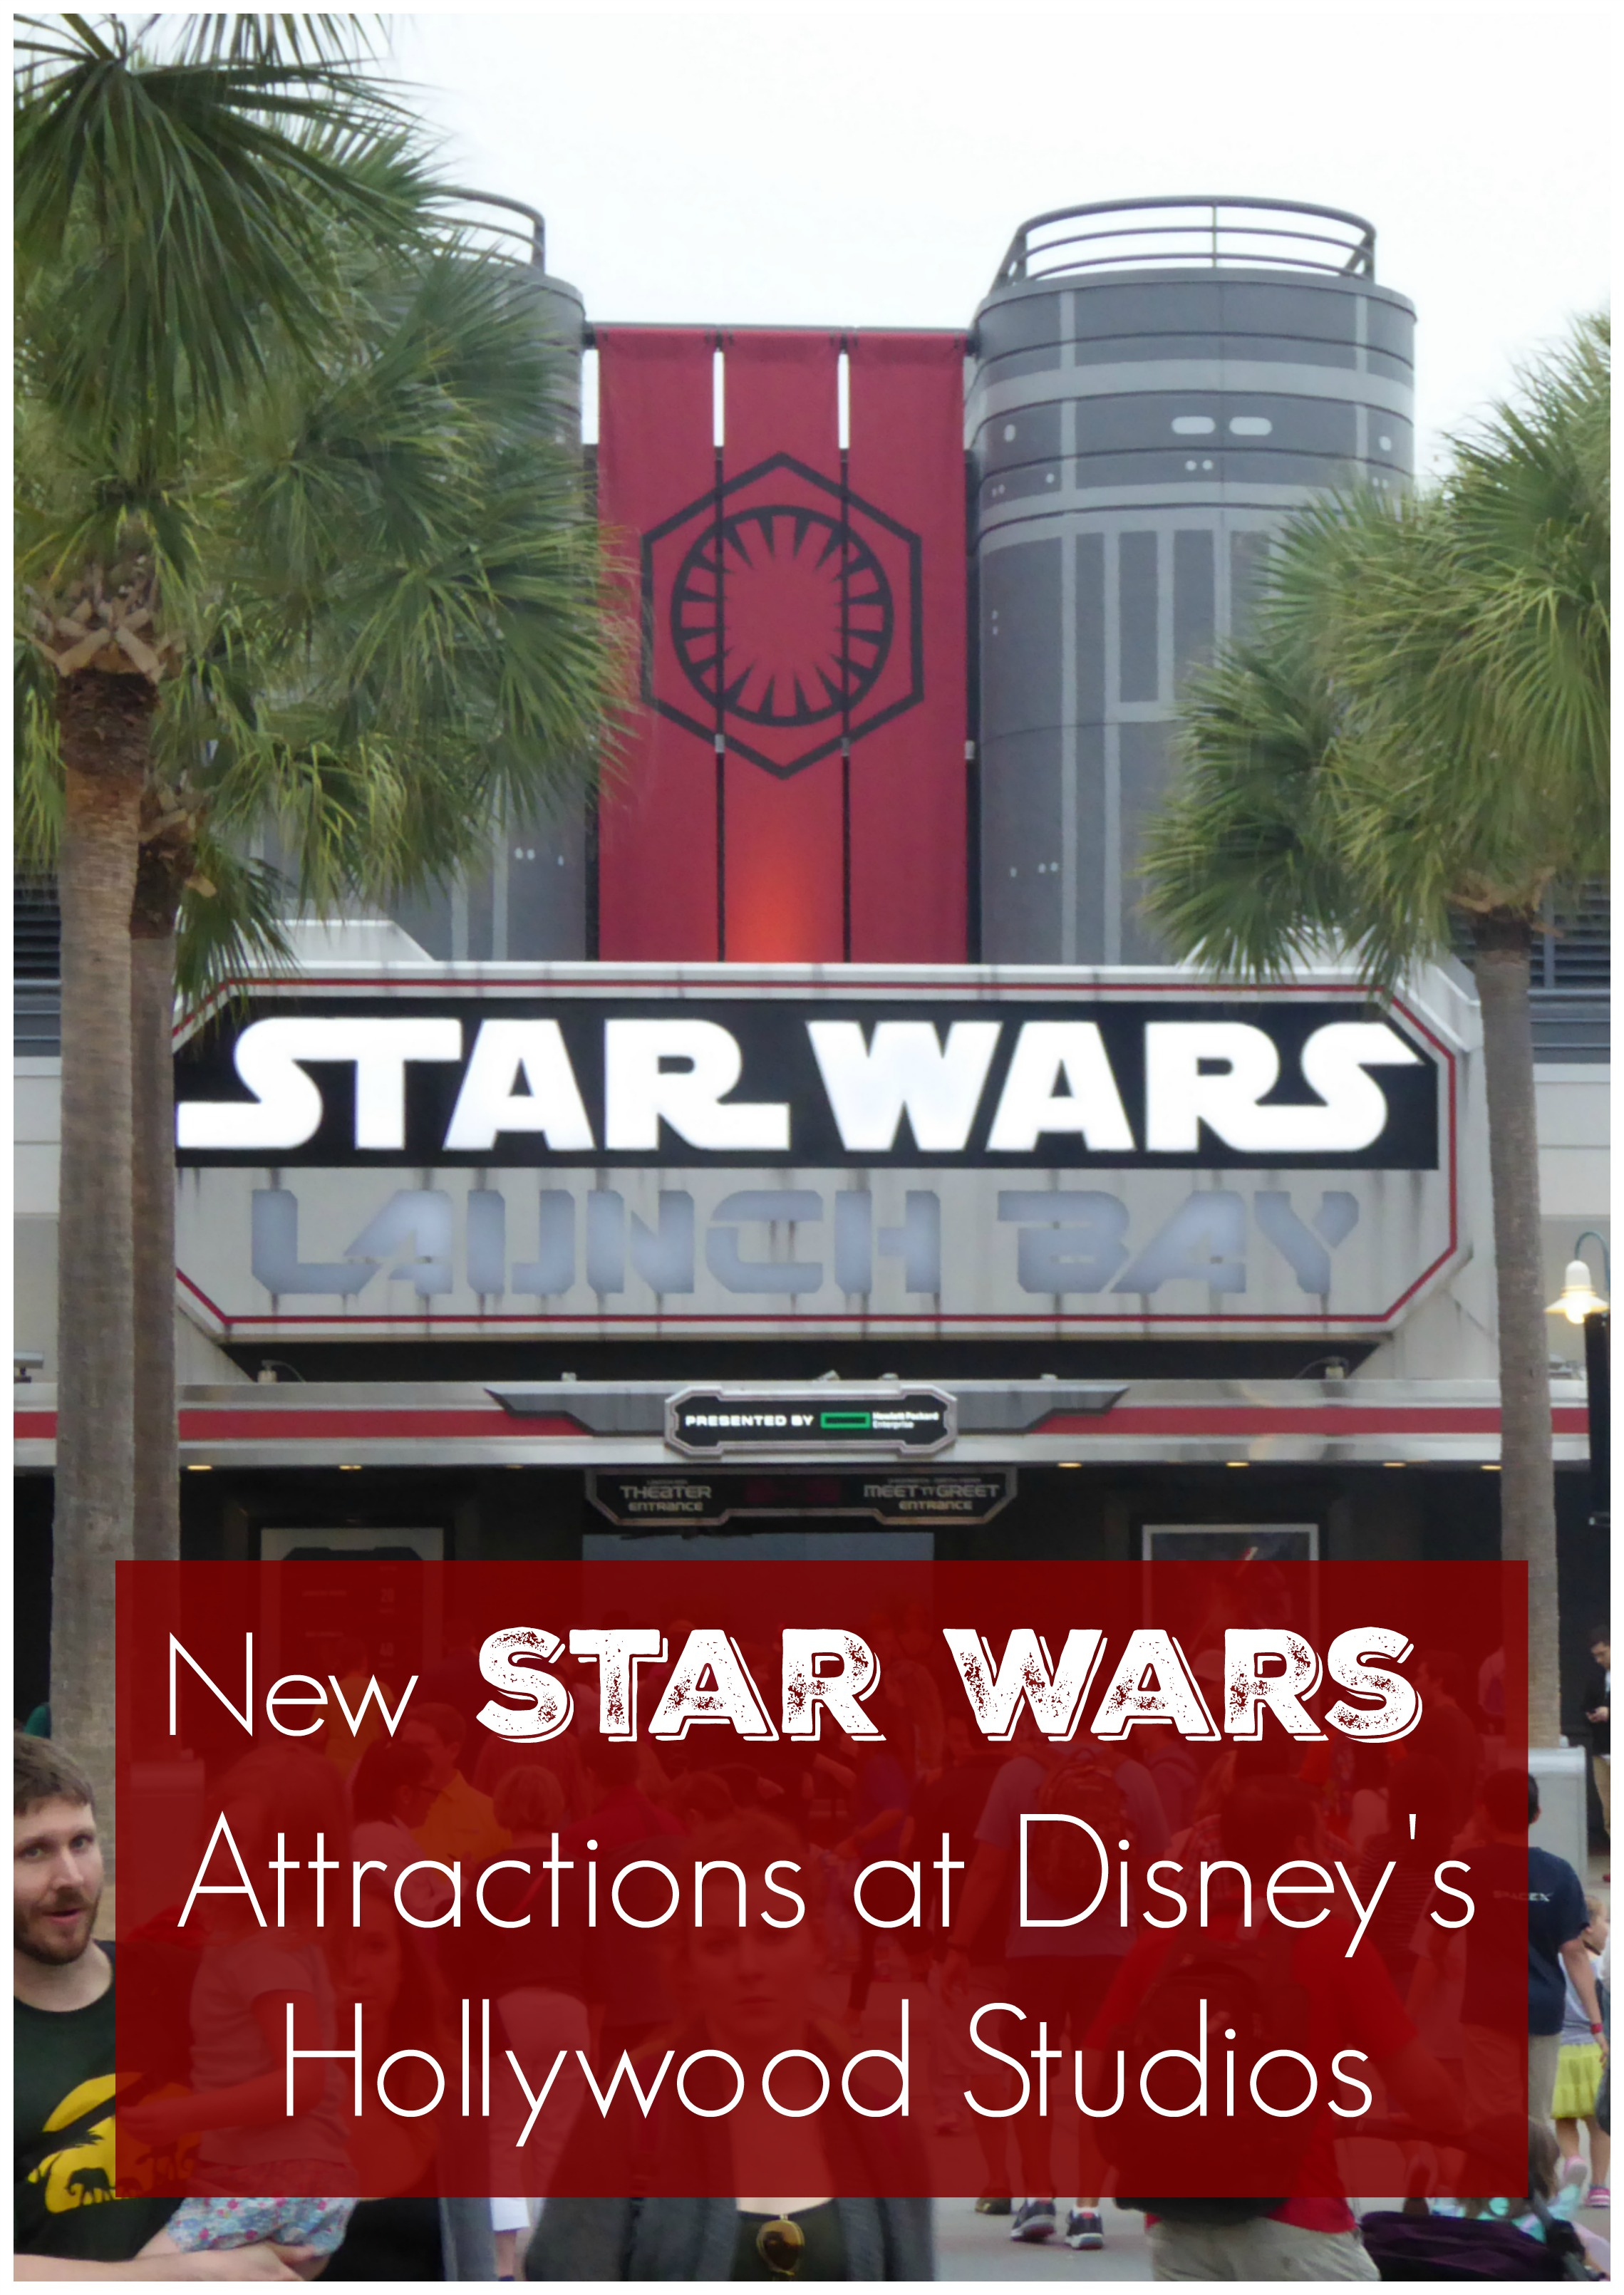 New Star Wars Attractions at Disney's Hollywood Studios